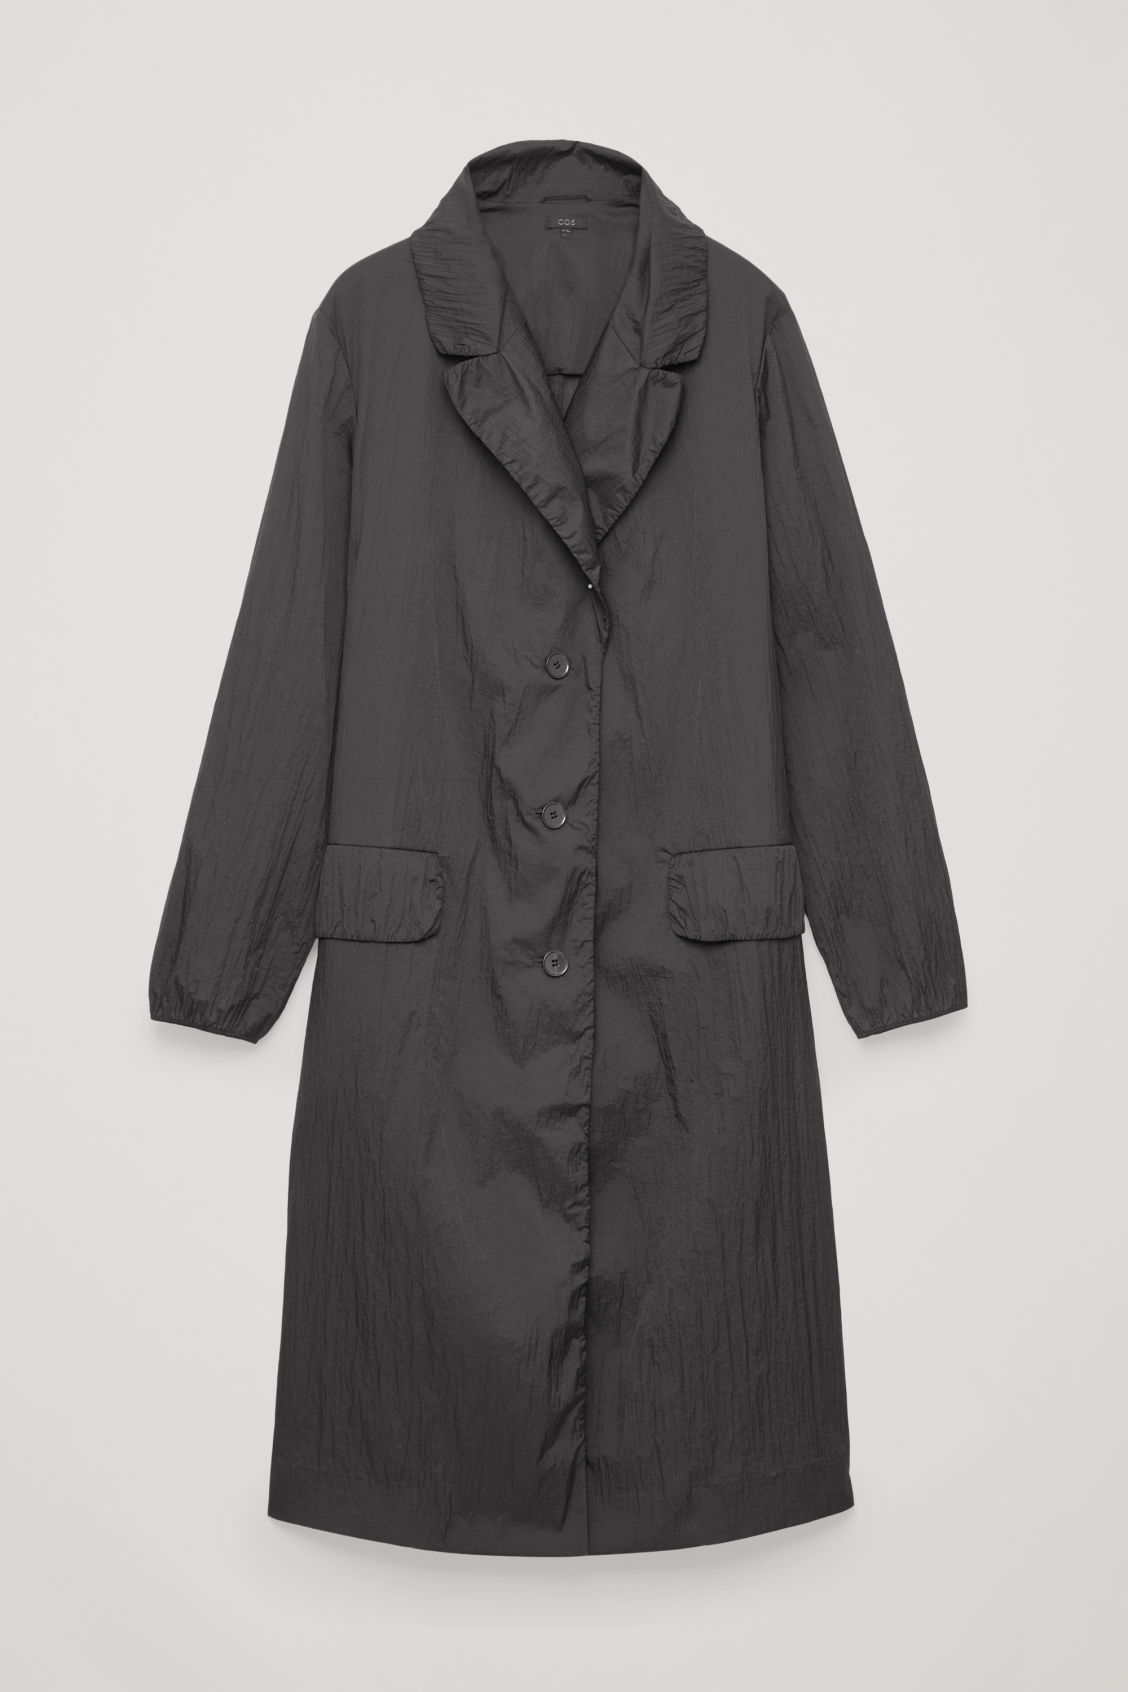 Crinkled Oversized Coat, Black from COS